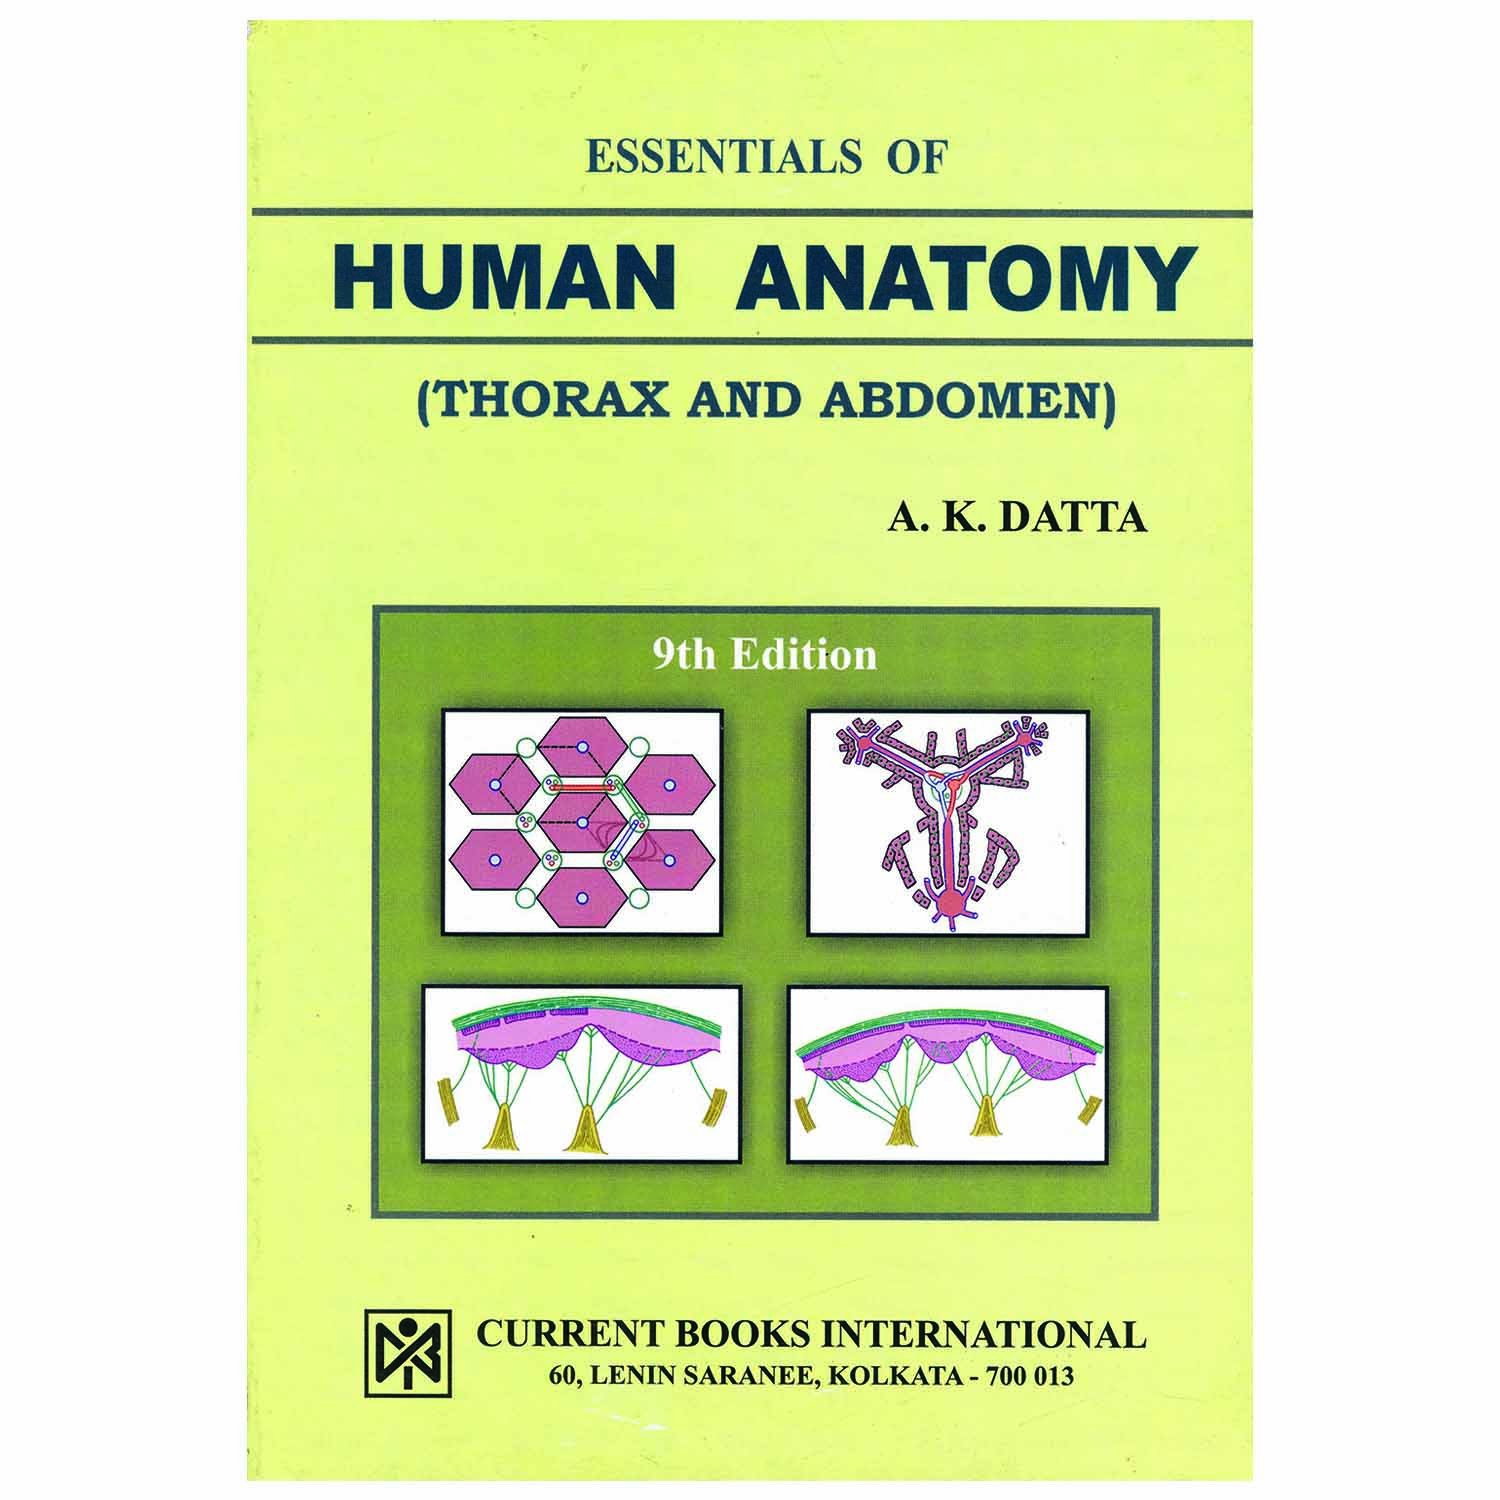 Amazon.in: Buy Essentials of Human Anatomy, VOL-1 (Thorax and ...